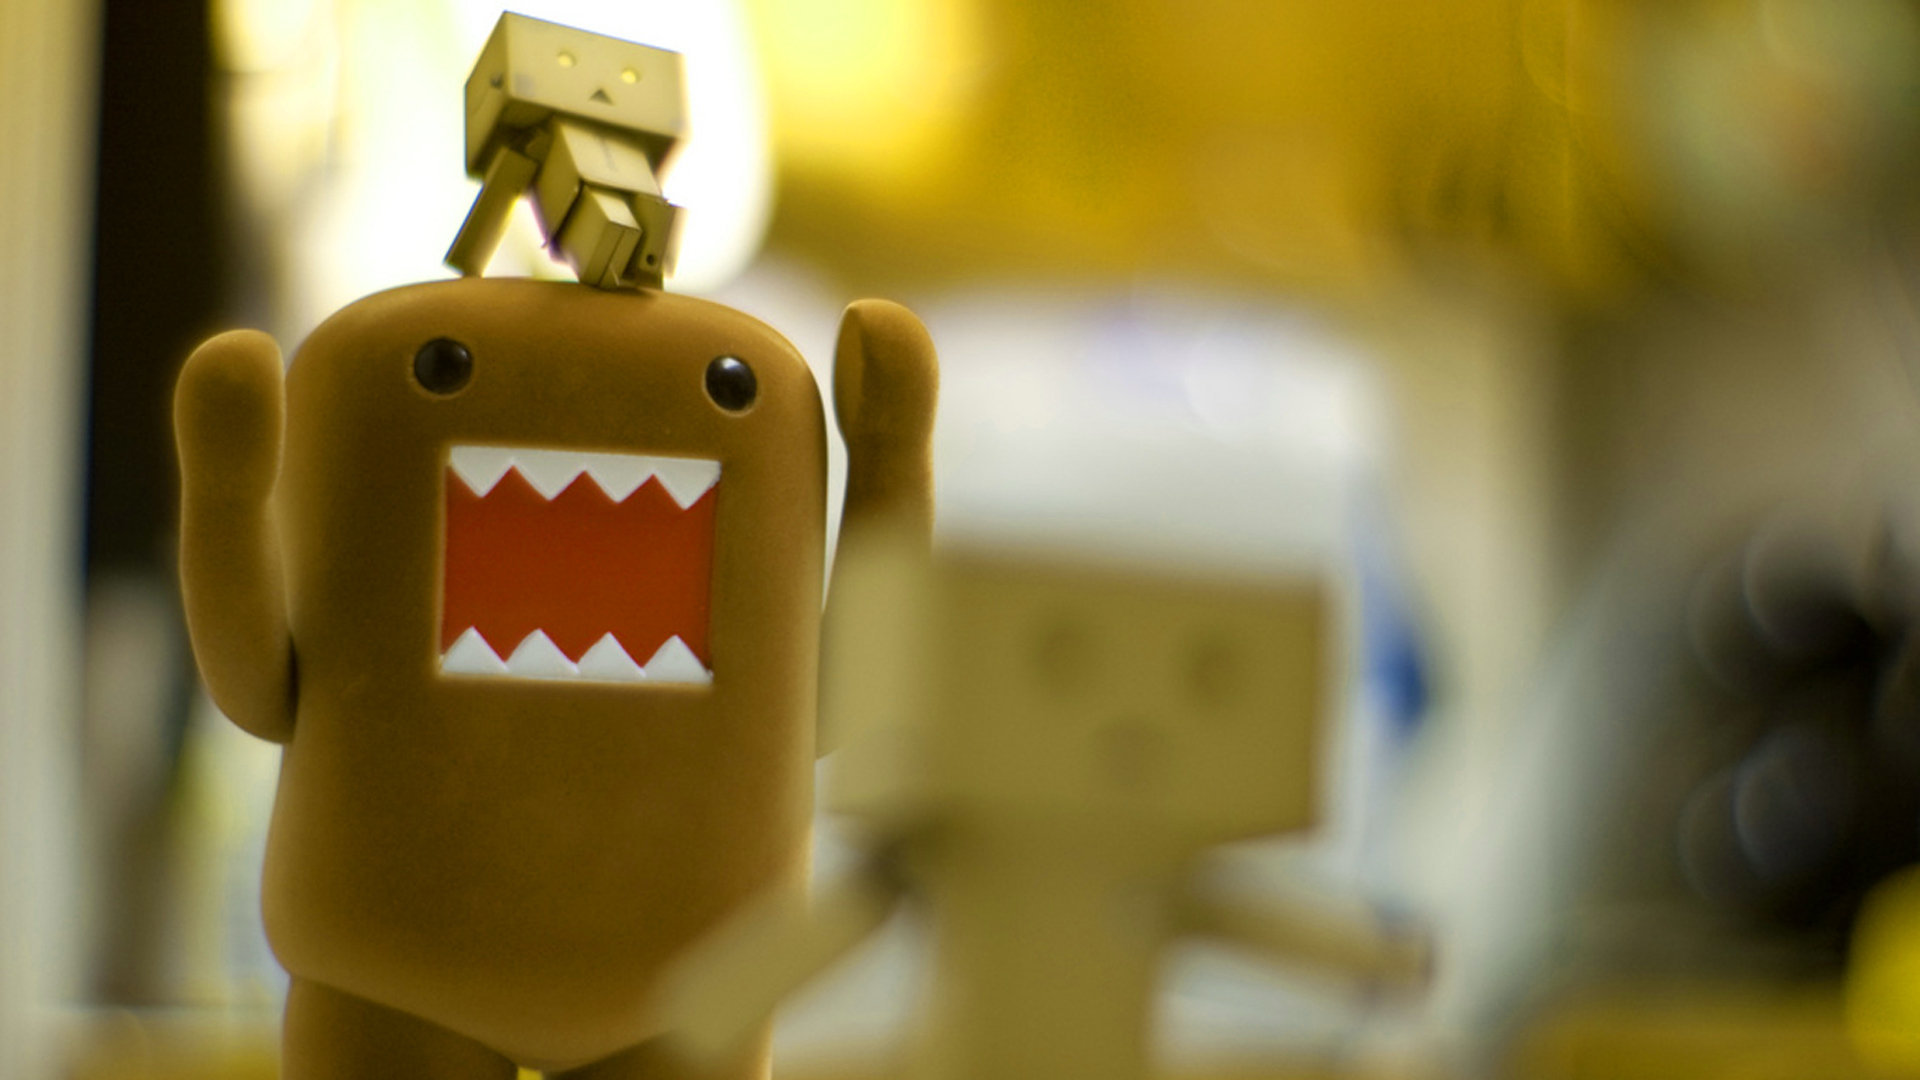 Danbo Domo Wallpaper Cute 11072 Wallpaper Cool Walldiskpaper 1920x1080